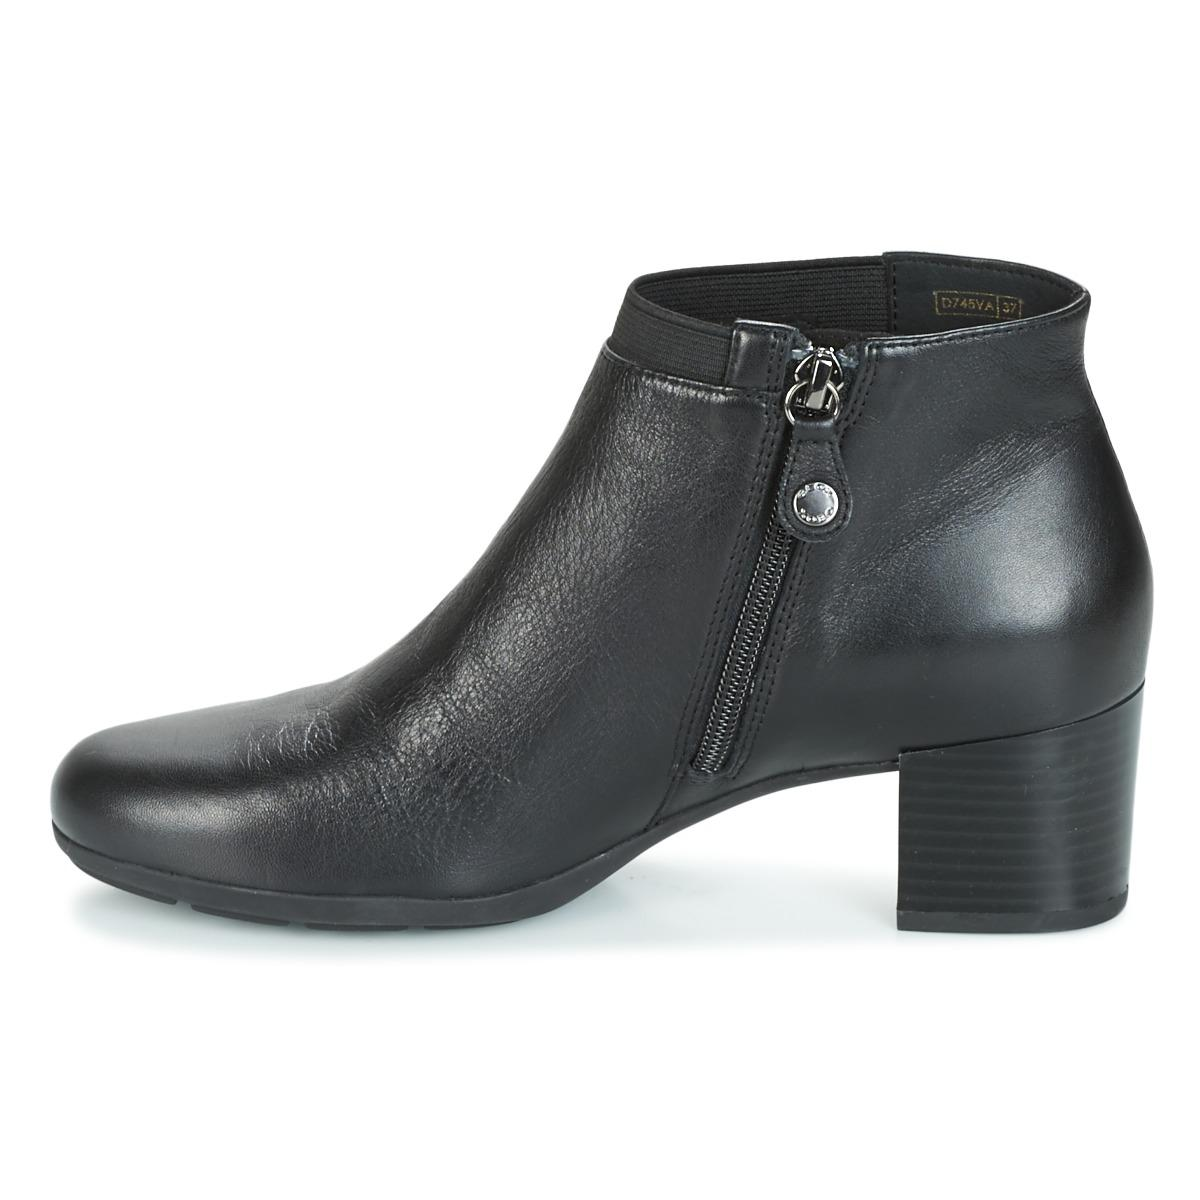 Geox Leather D Annya Mid Low Ankle Boots in Black